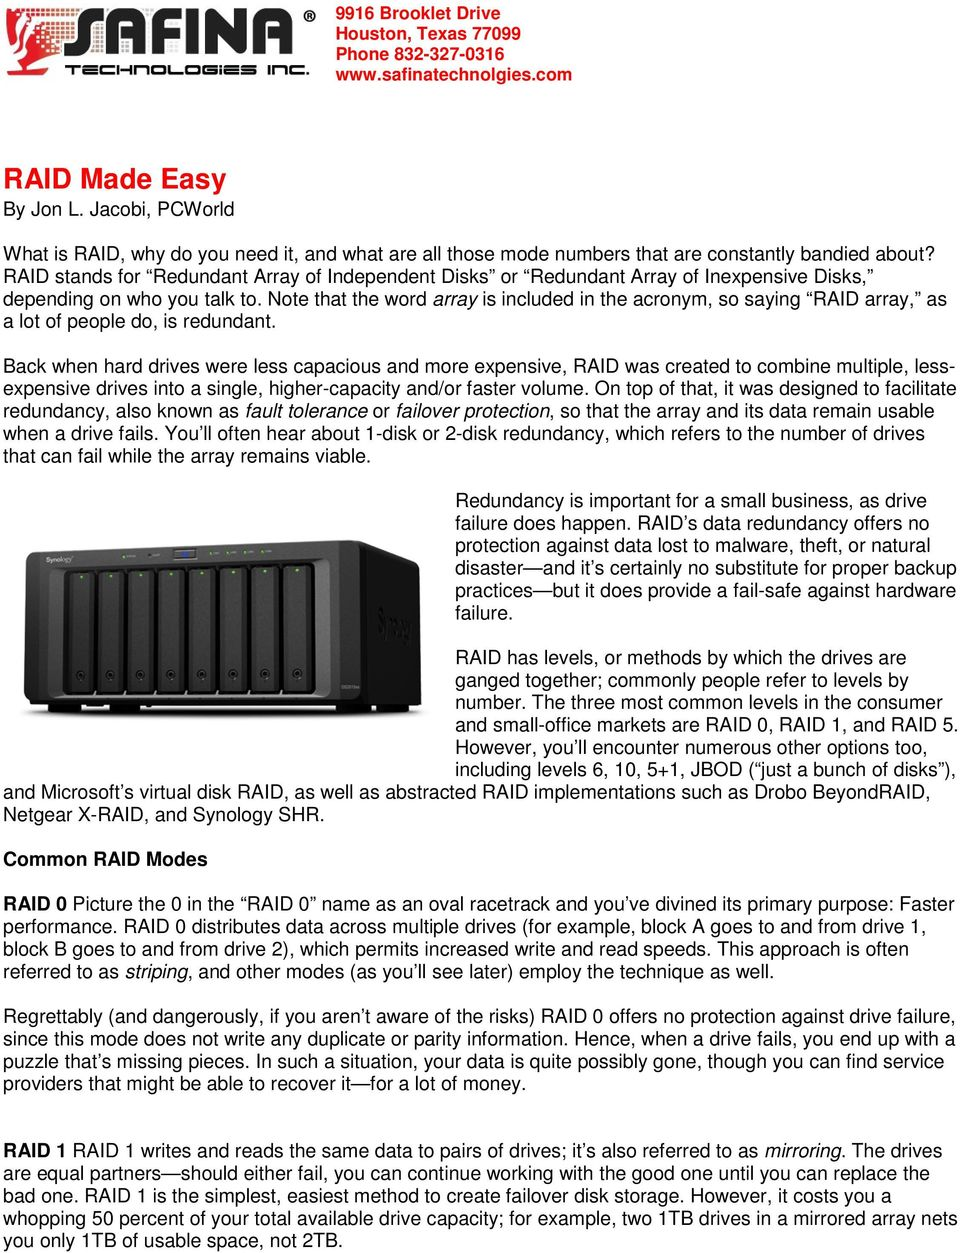 RAID stands for Redundant Array of Independent Disks or Redundant Array of Inexpensive Disks, depending on who you talk to.